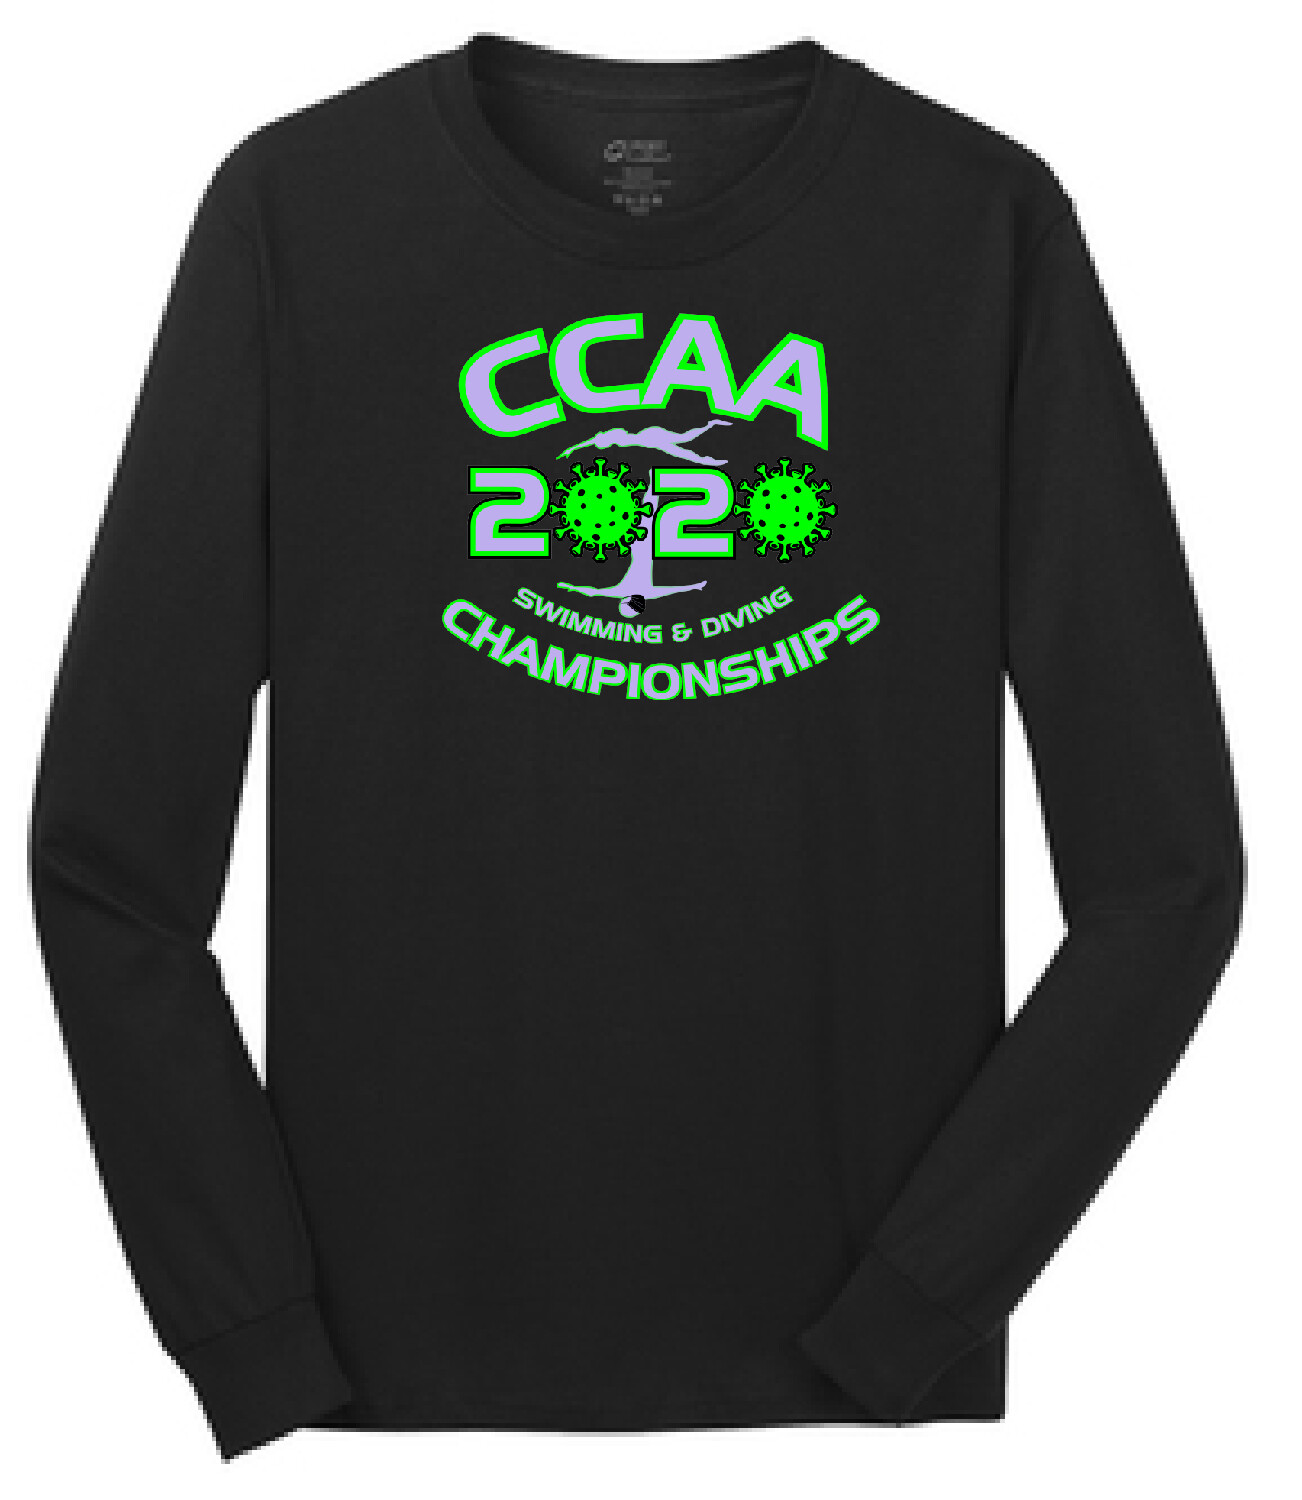 2020 CCAA Championship Swim Meet Long Sleeve